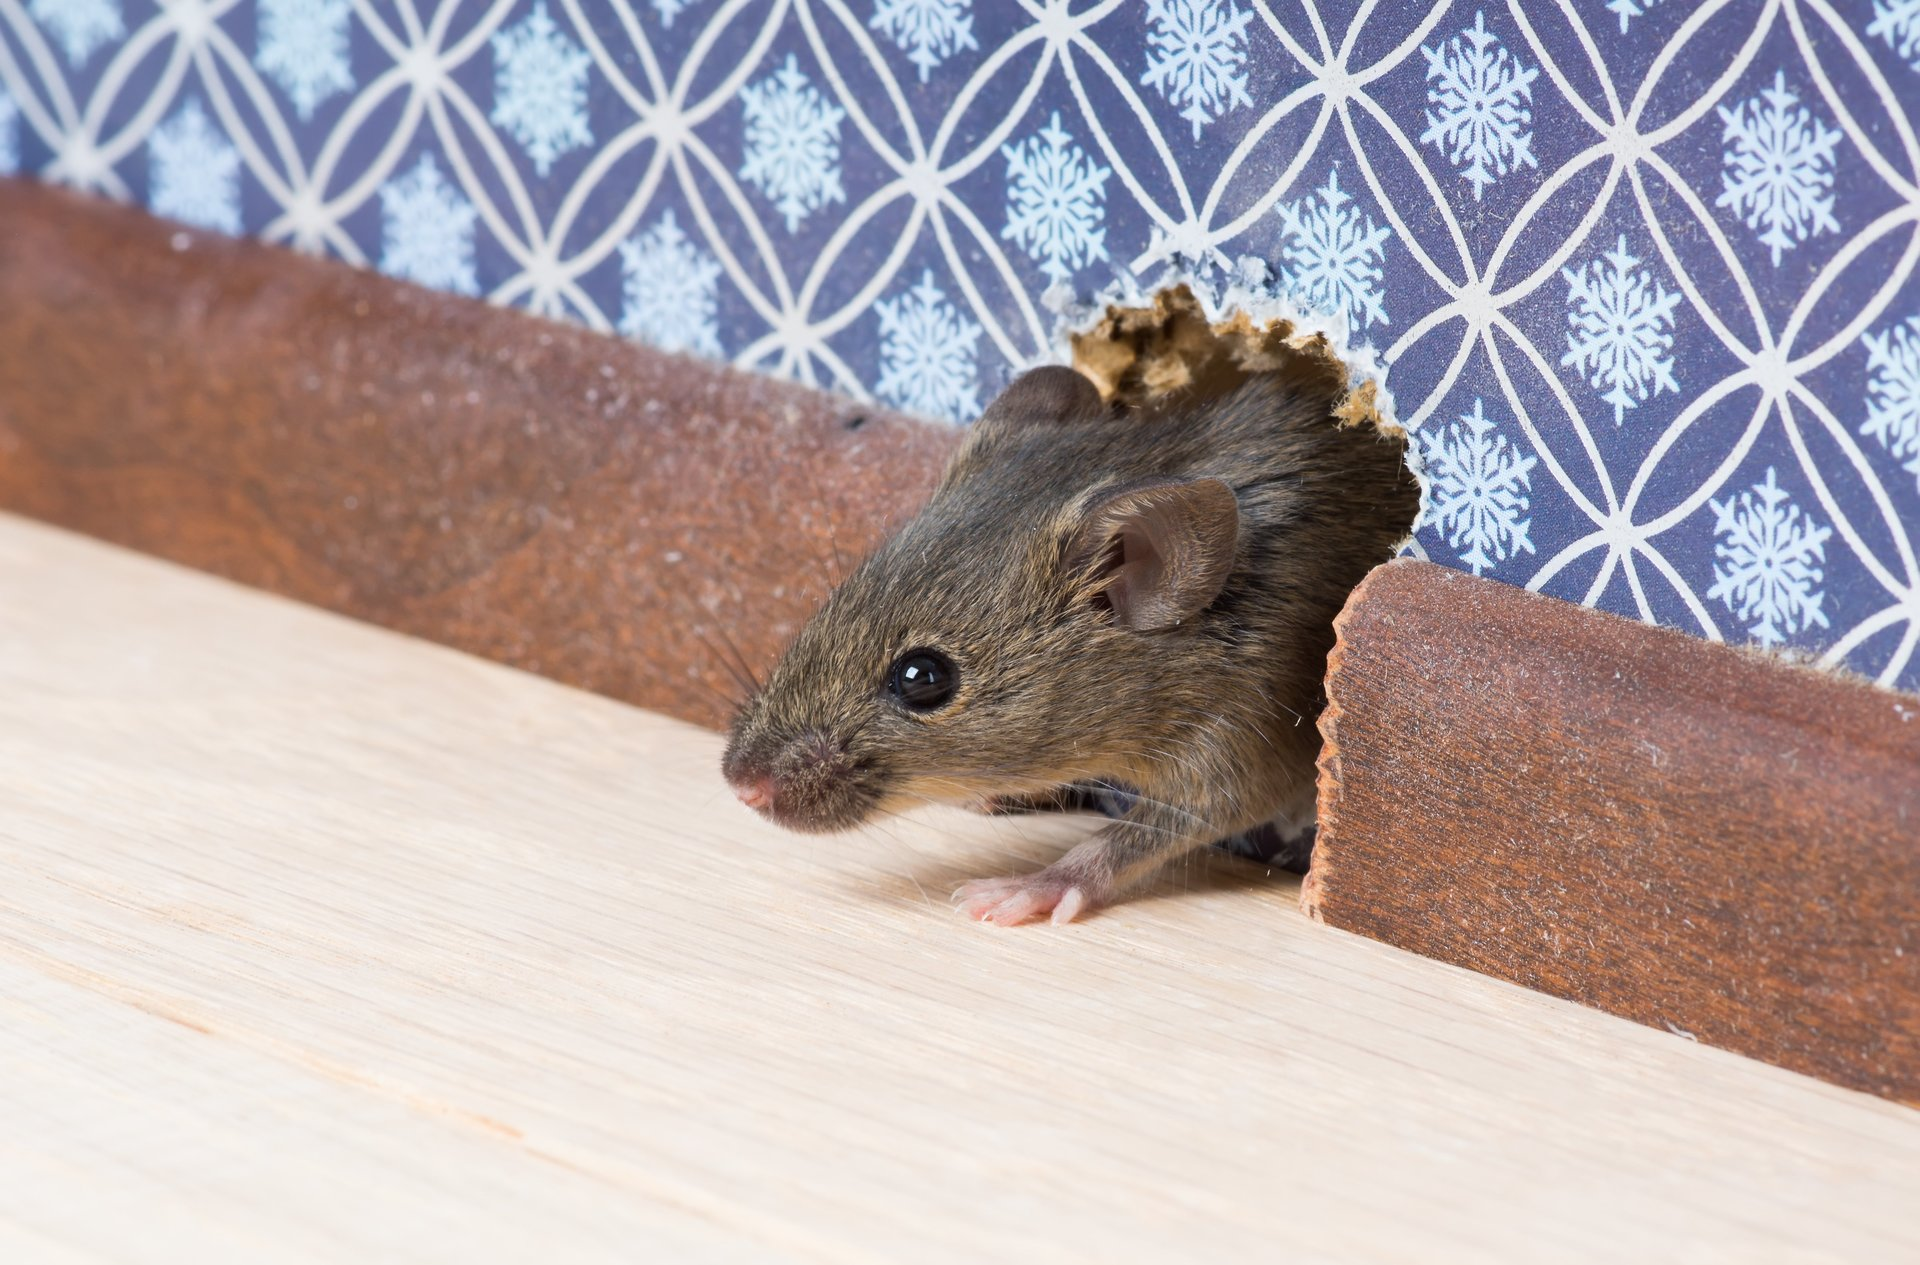 Ratice Can Invade Your Home Through Even The Tiniest Of Openings Once You Have A Mice Or Rat Problem It Be Very Tricky To Eliminate